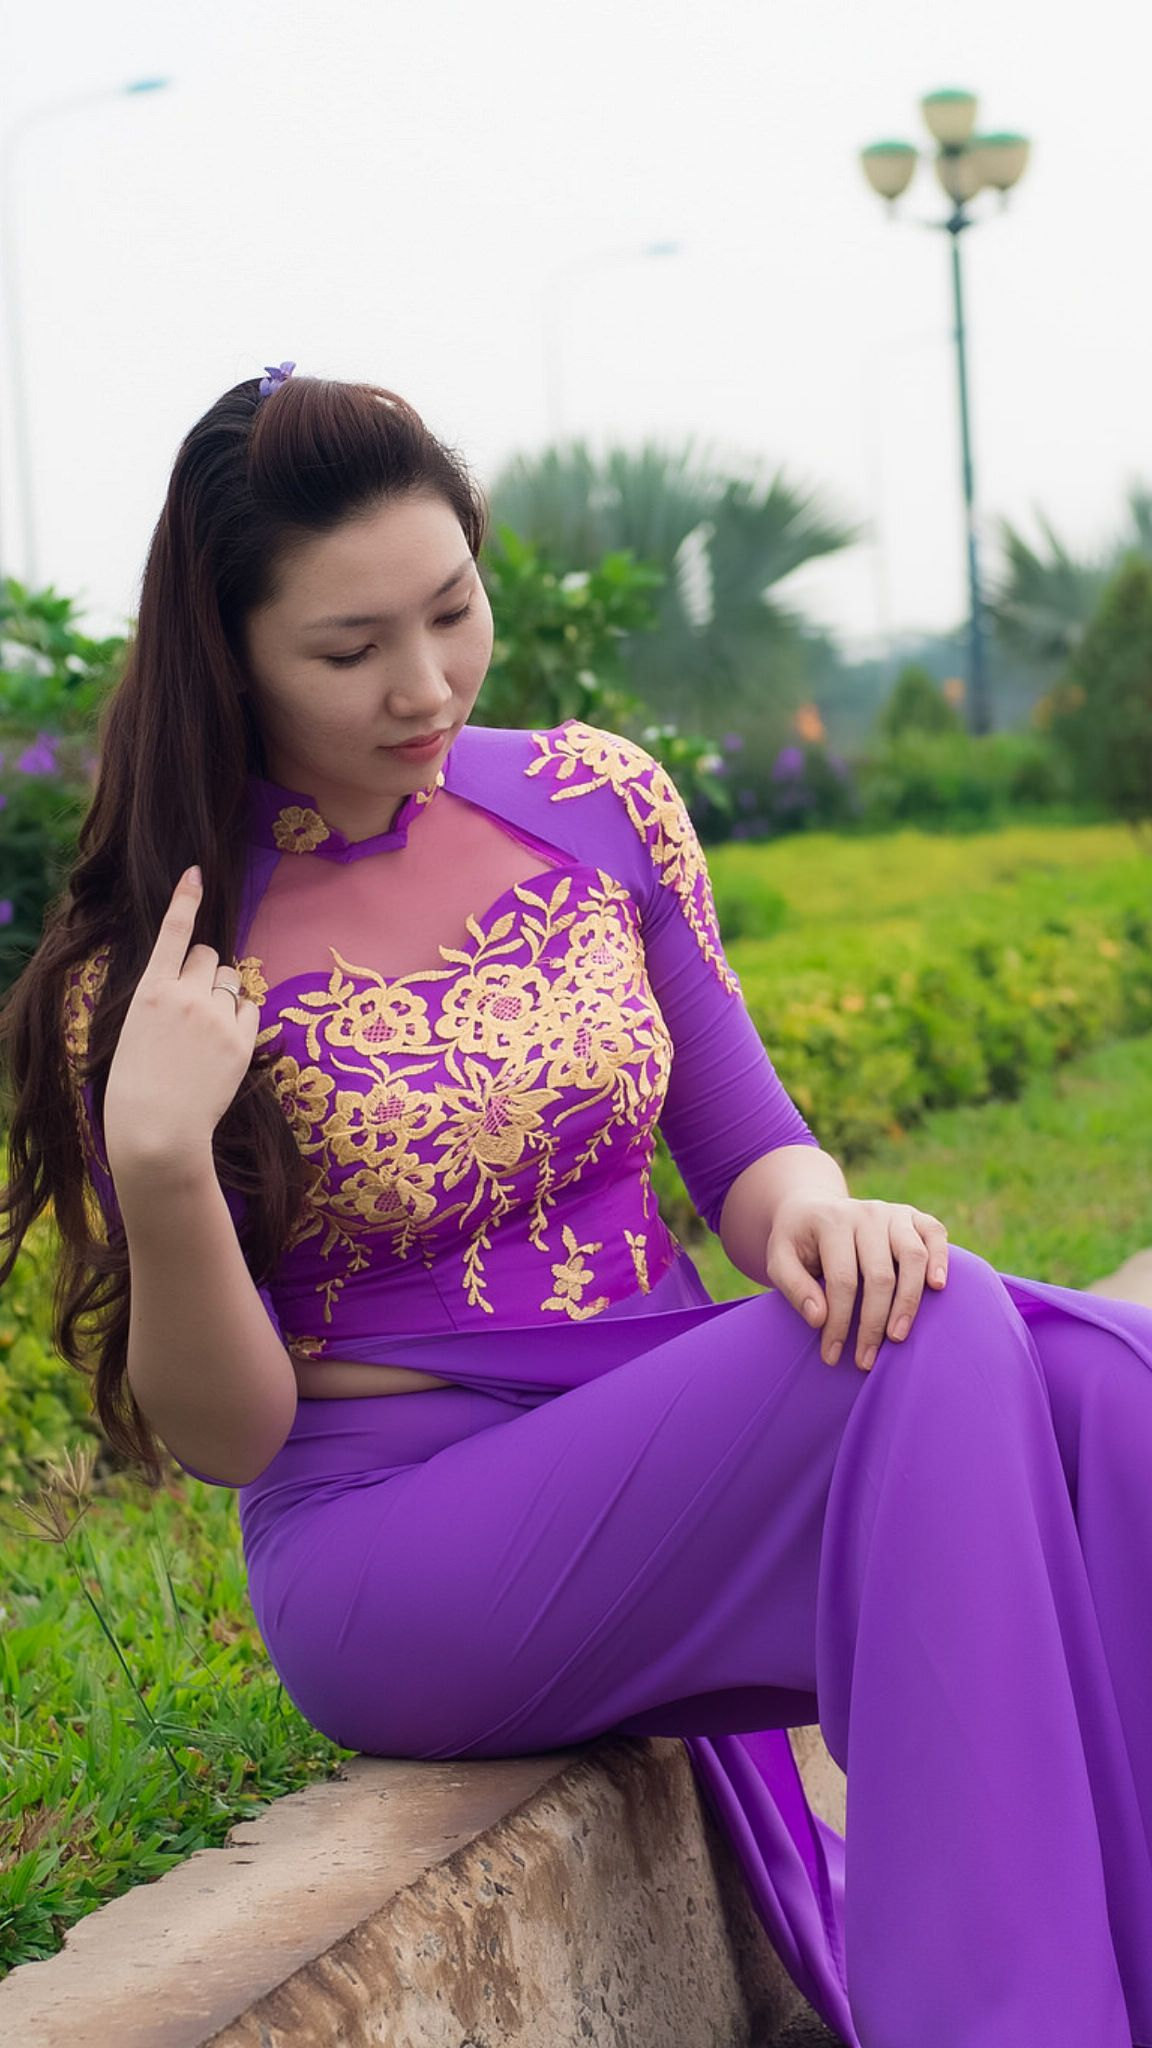 Pin de Trancuongdad@gmail.com en Vietnamese long dress 1 | Pinterest